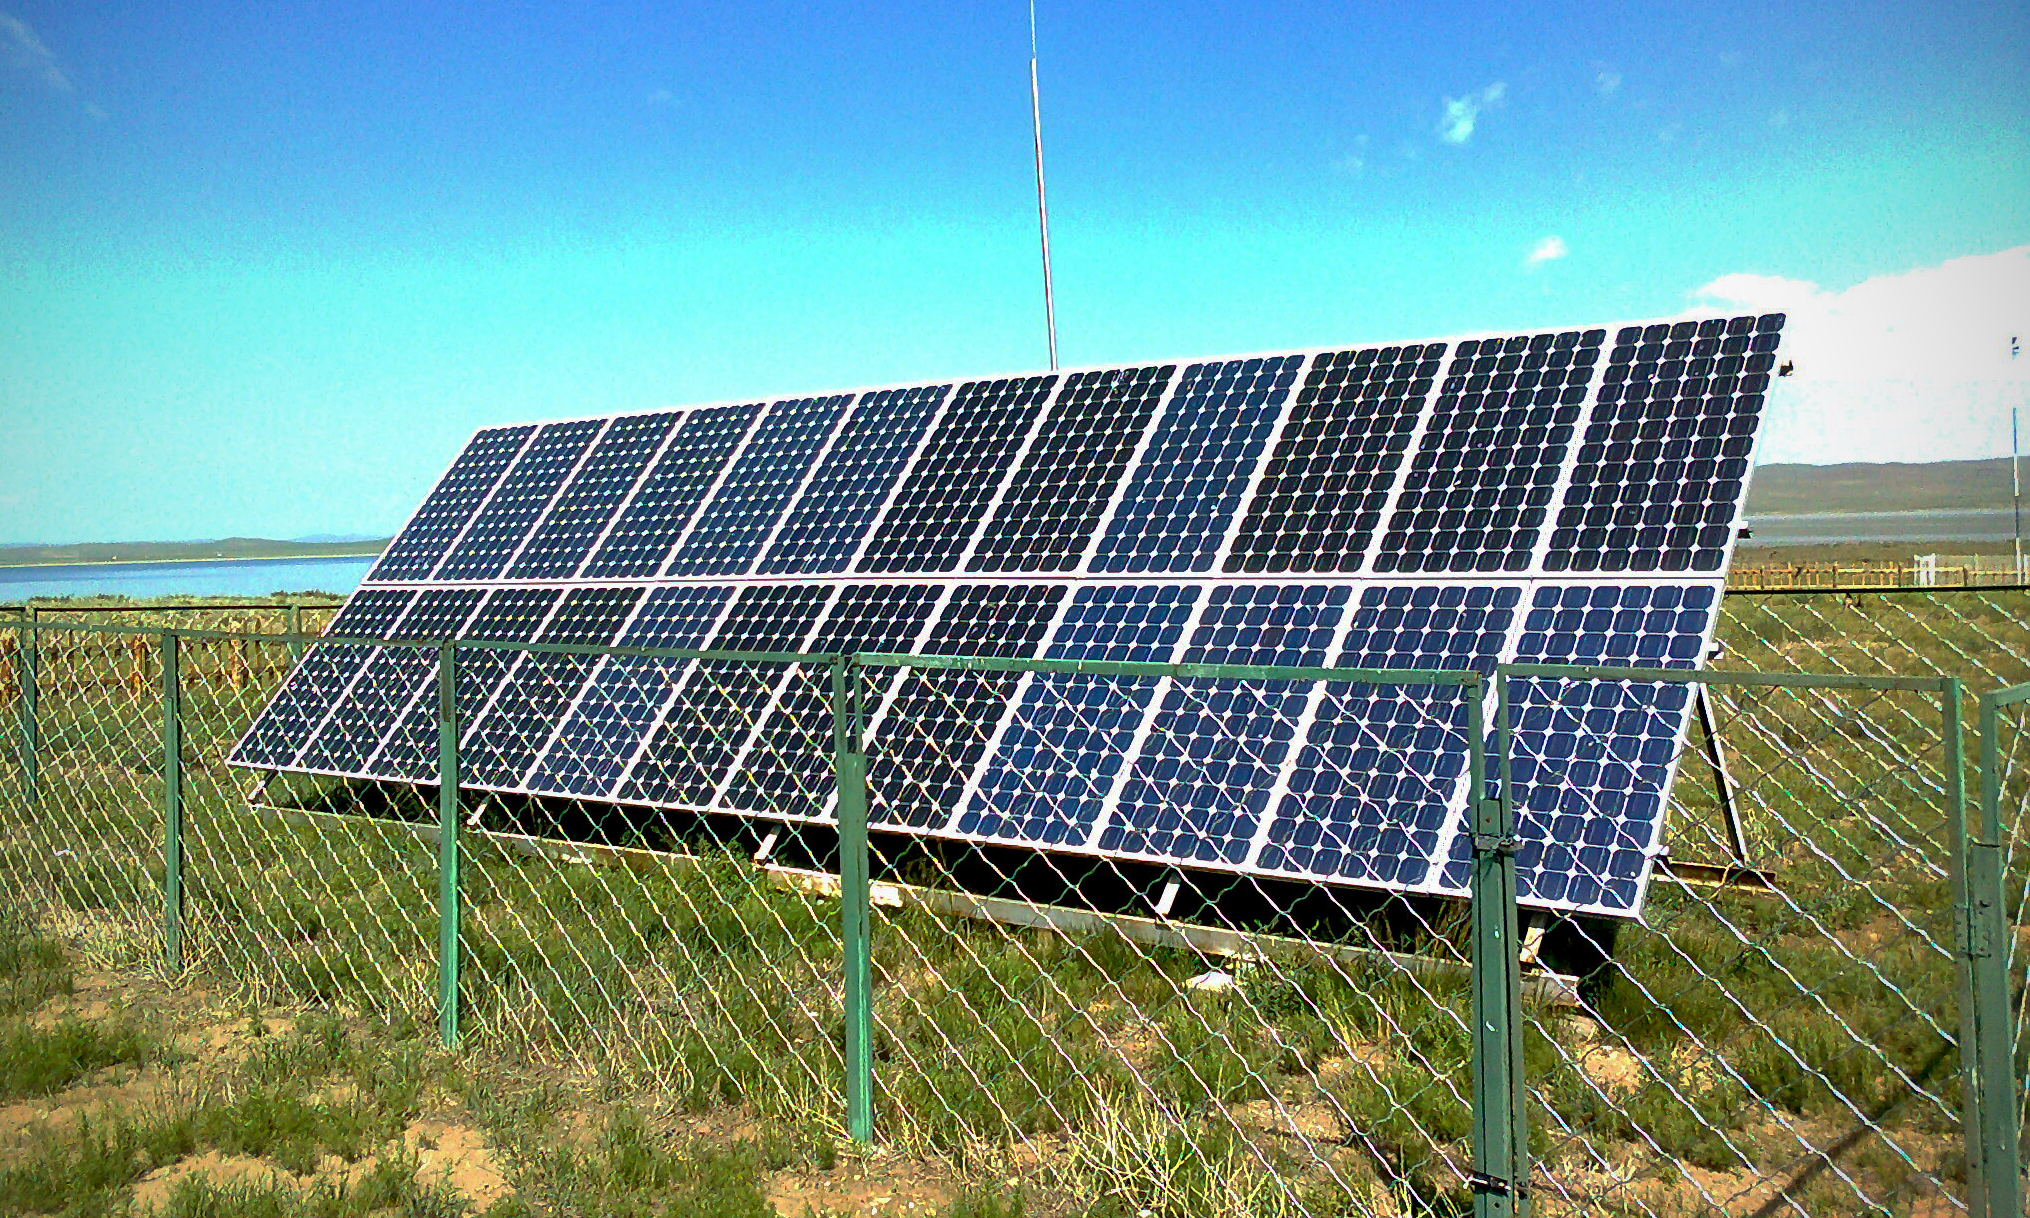 These are solar panels installed in the outdoors